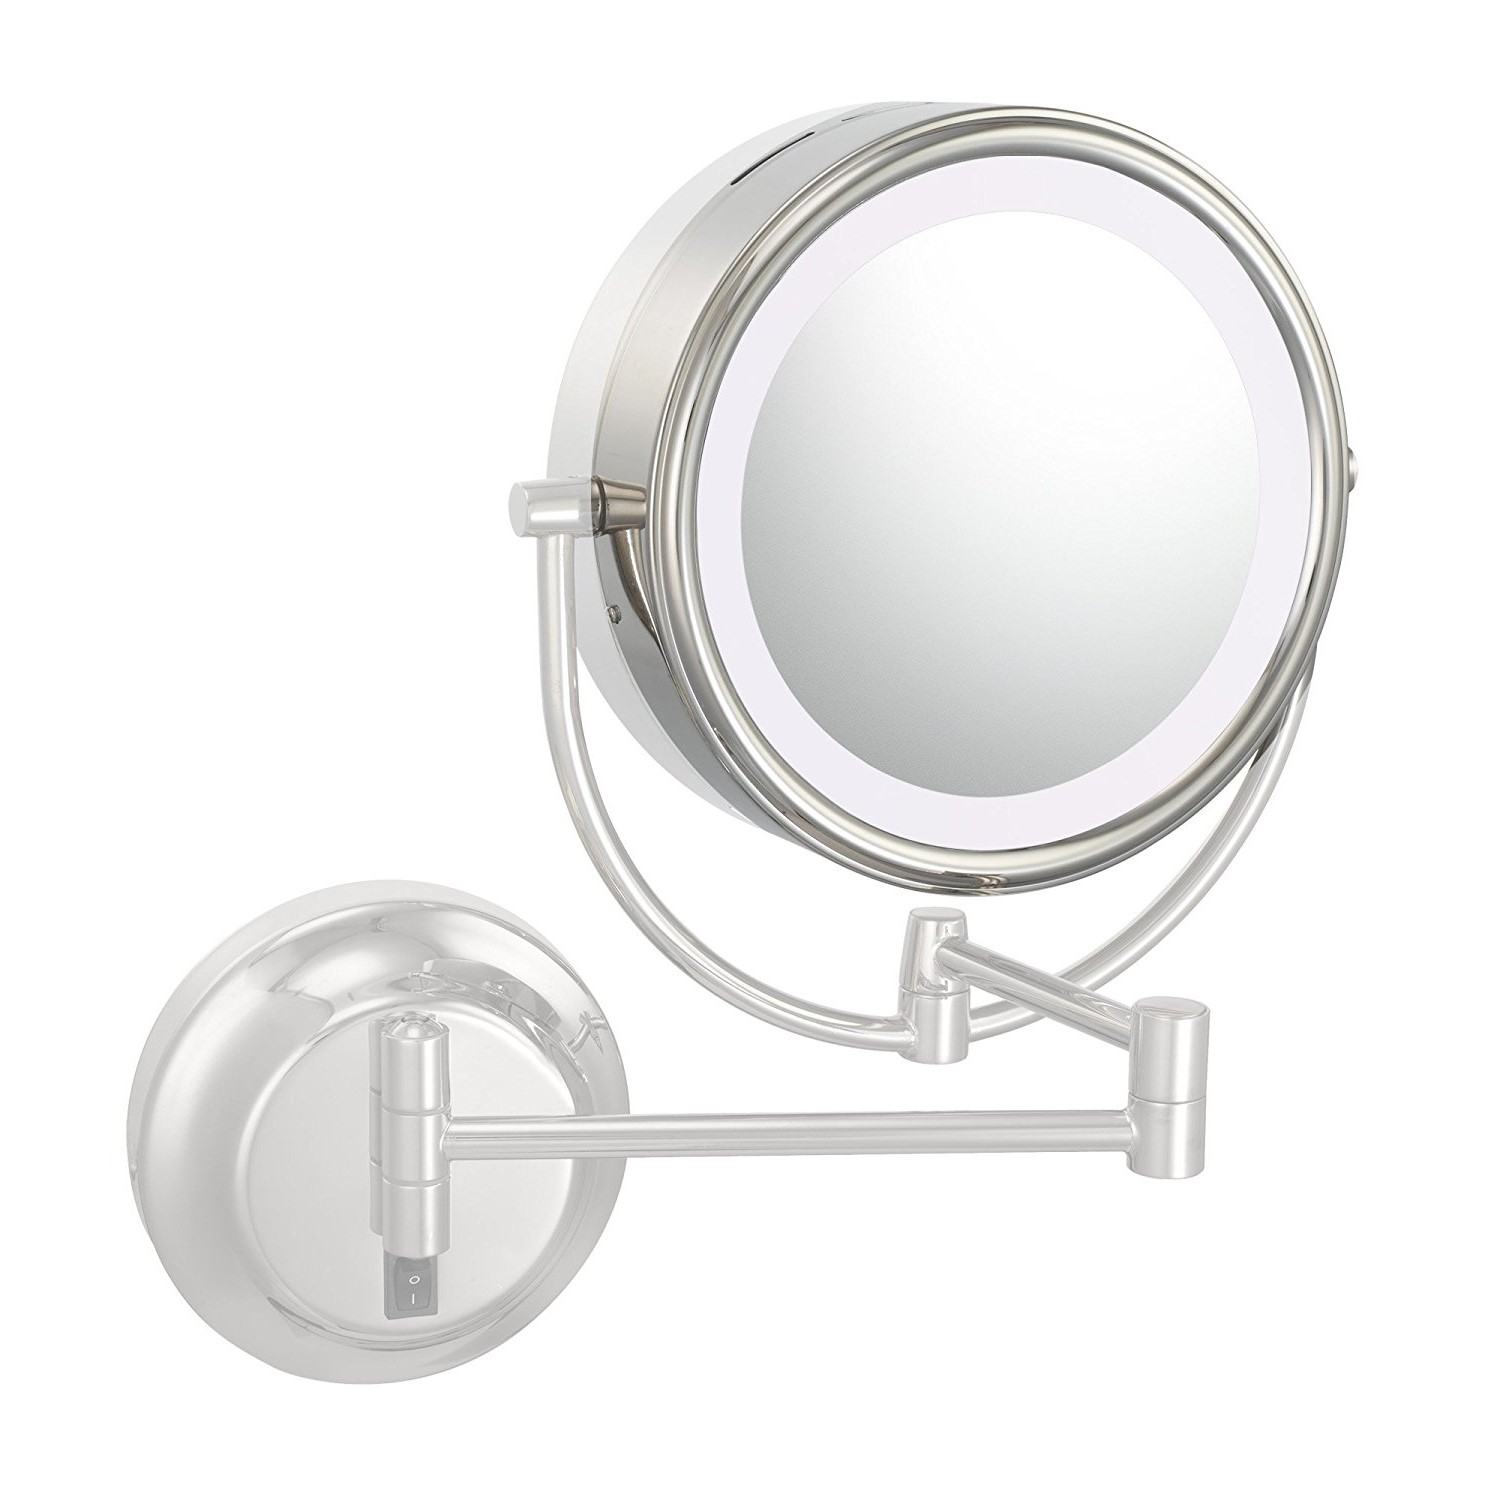 Kimball & Young 925135 Makeup Mirror